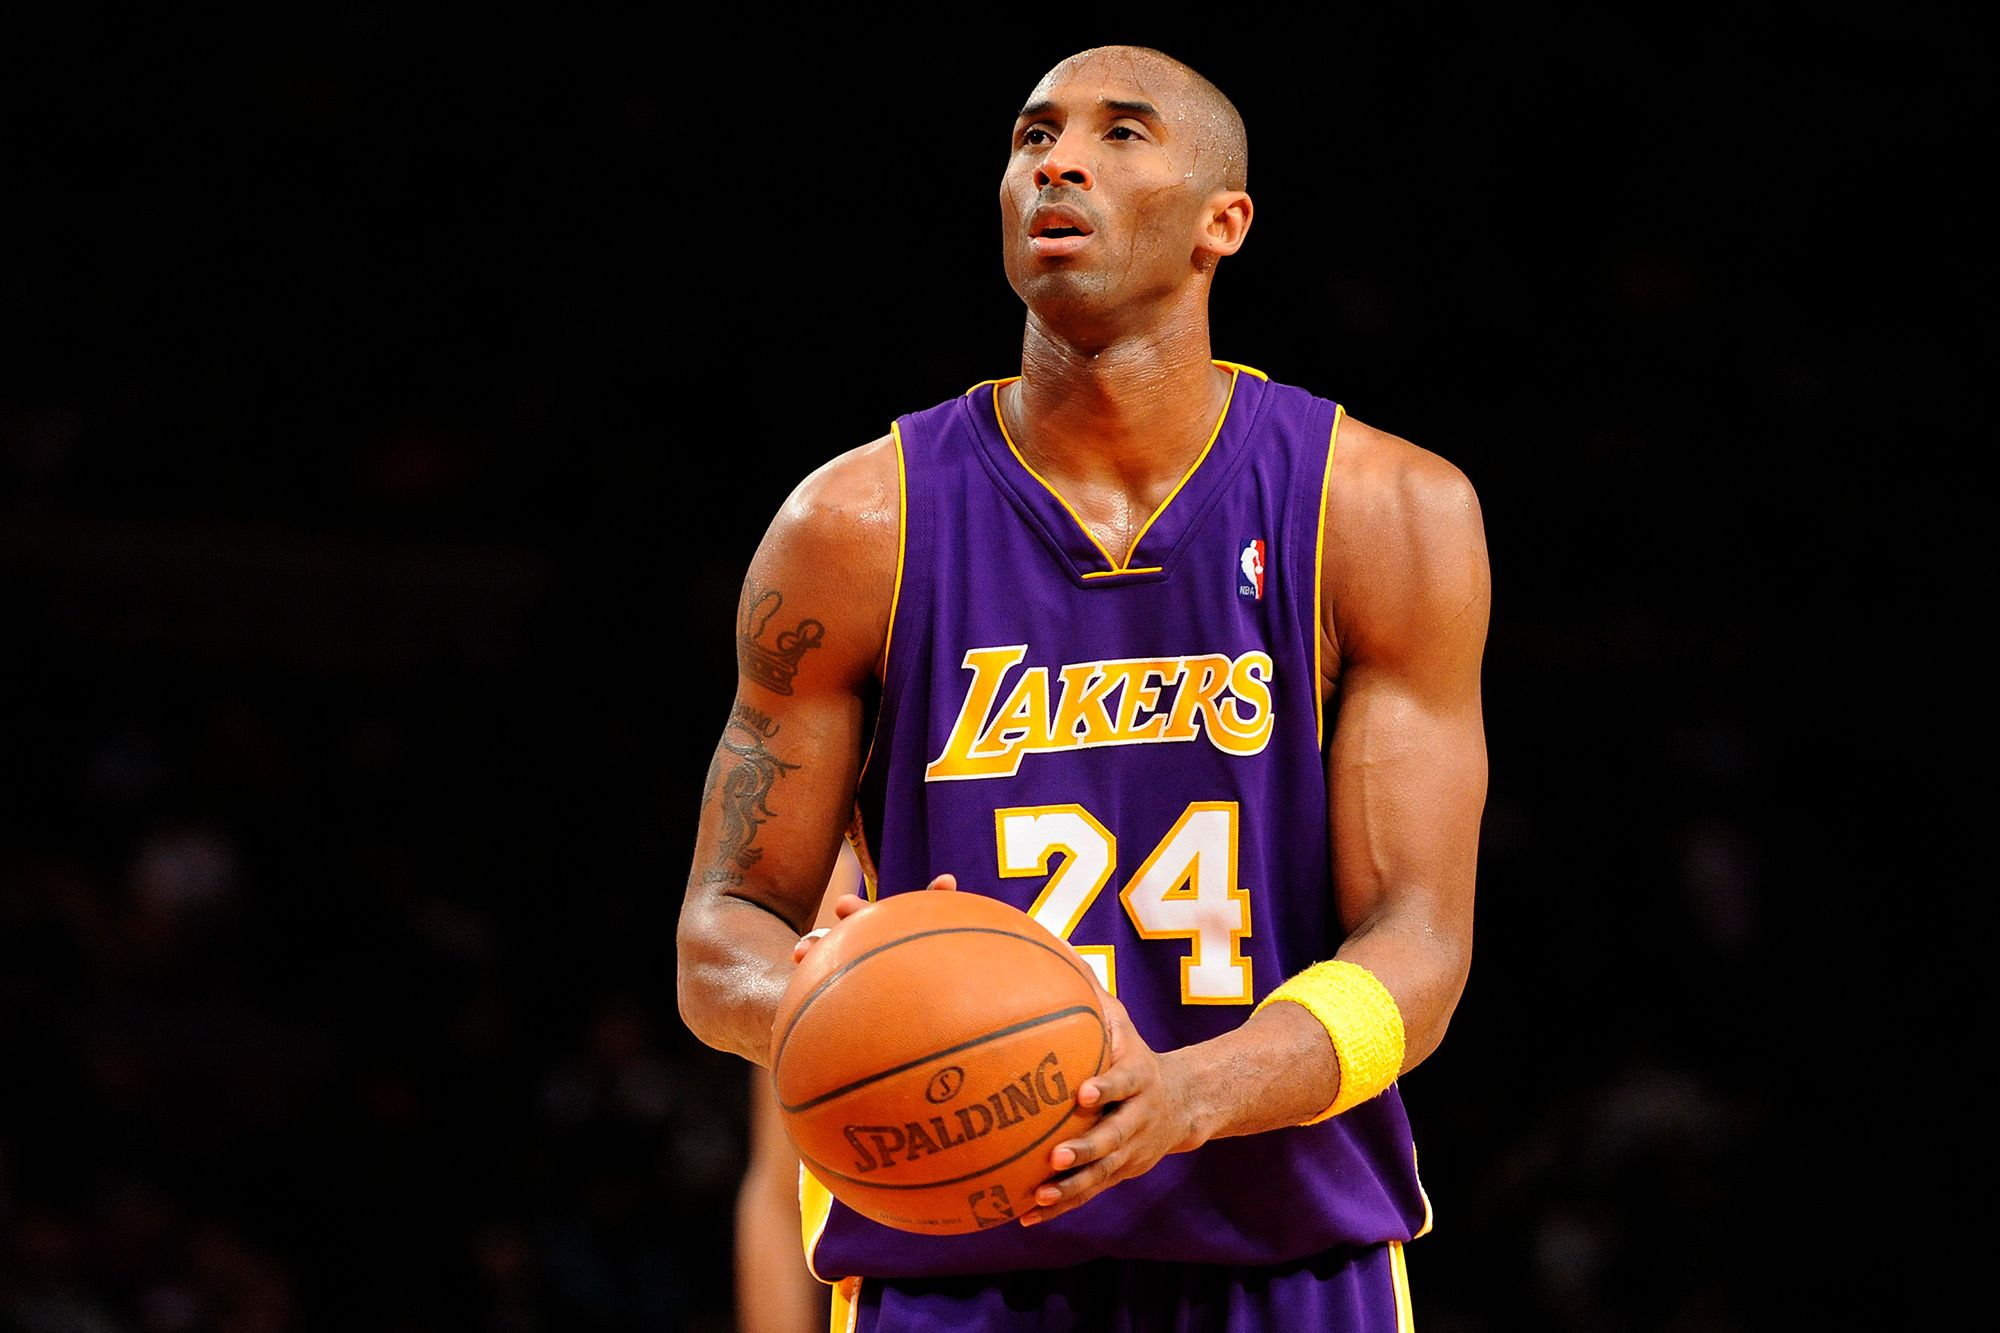 Basketball player Kobe Bryant holds a basketball at waist level while preparing to shoot a free throw.